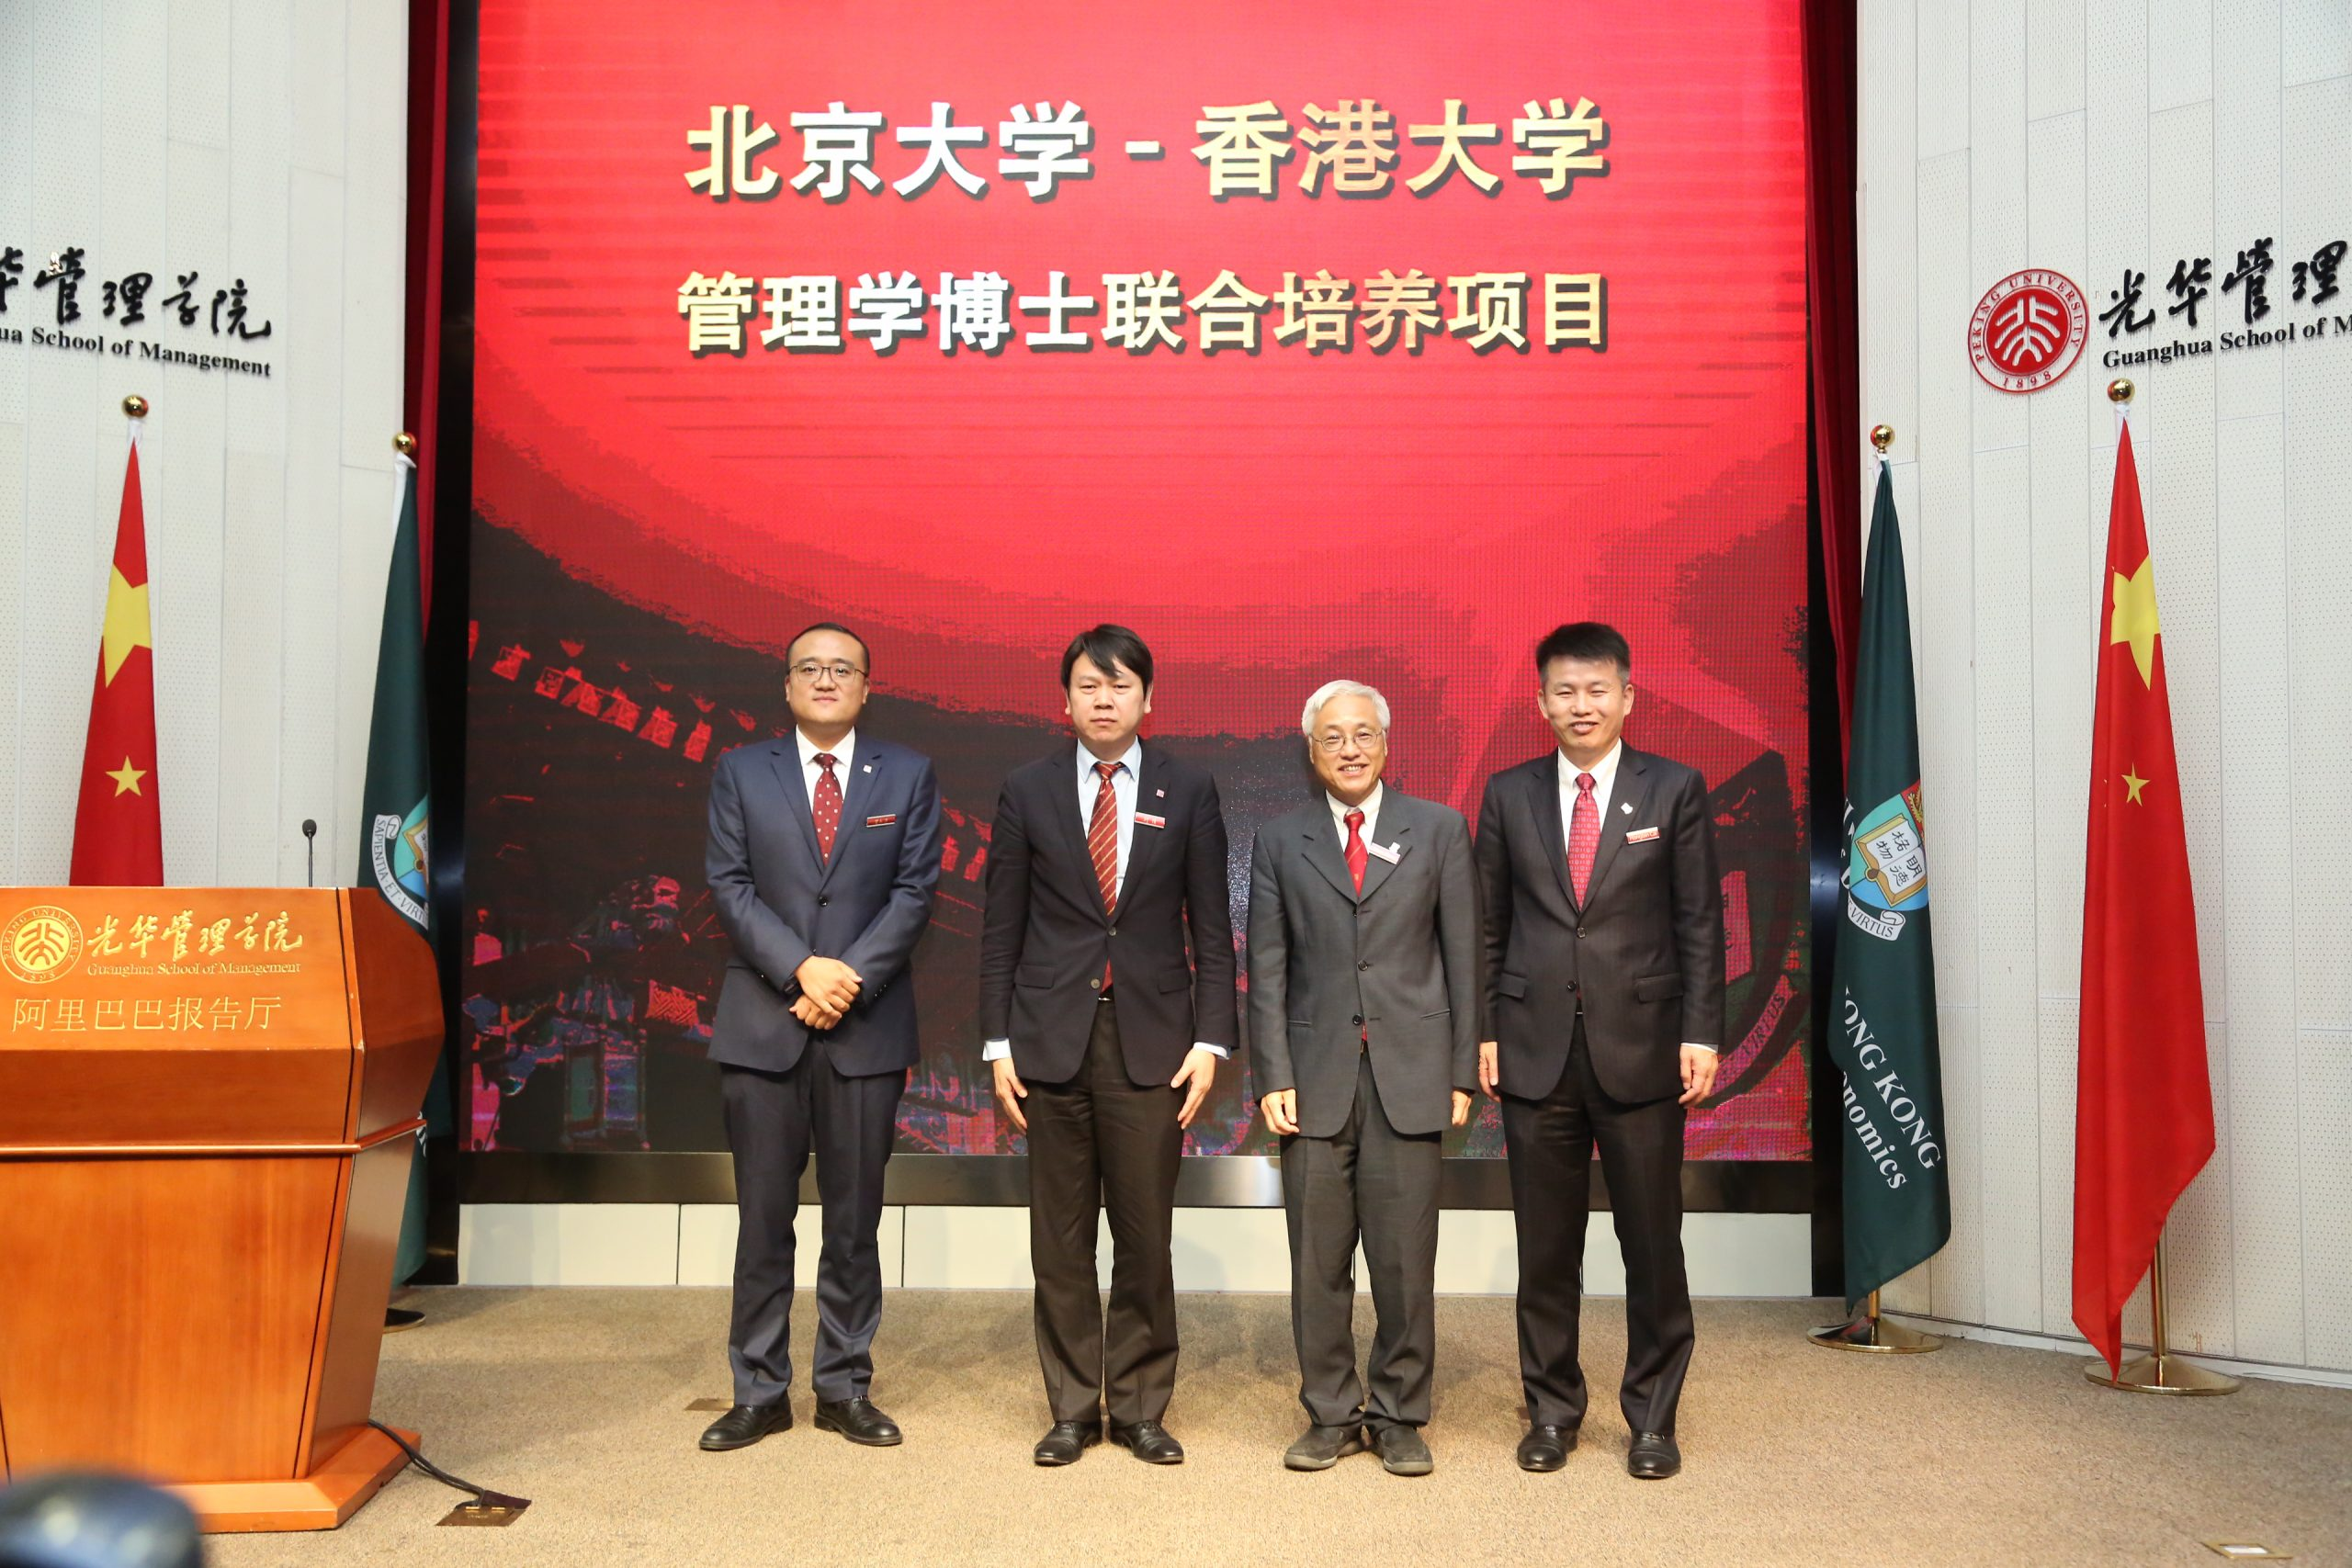 DBA programme launched in collaboration with Guanghua School of Management of Peking University